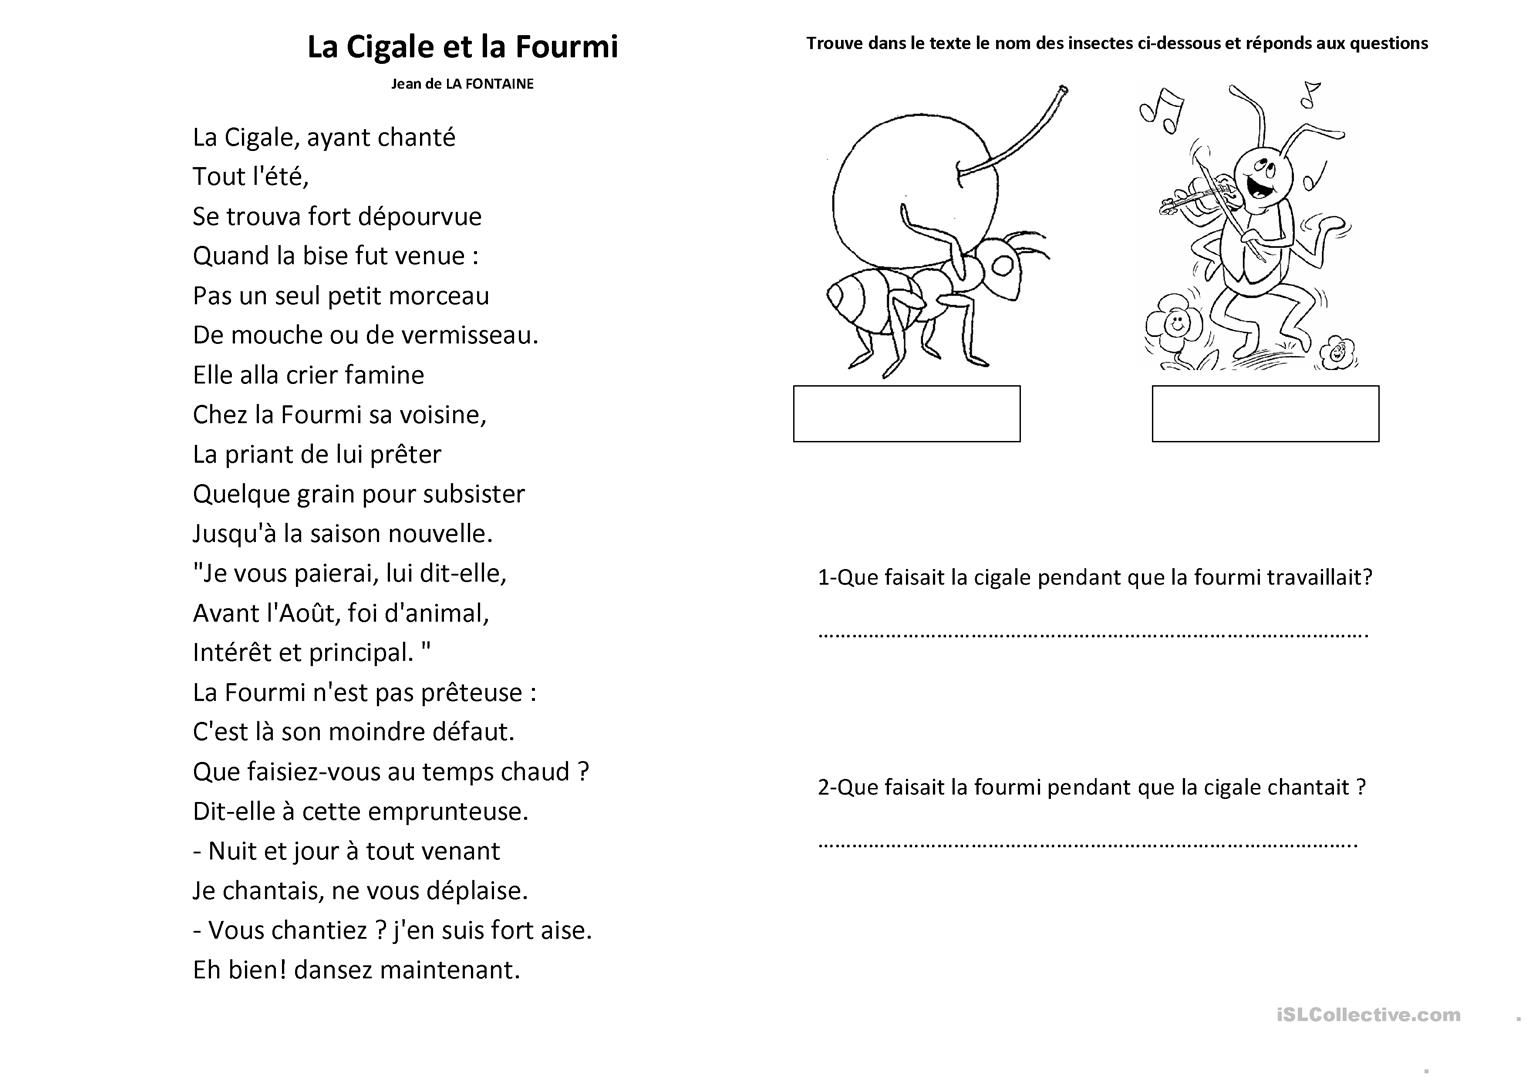 La cigale et la fourmi comprehension fiche d 39 exercices - La cigale et la fourmi a imprimer ...